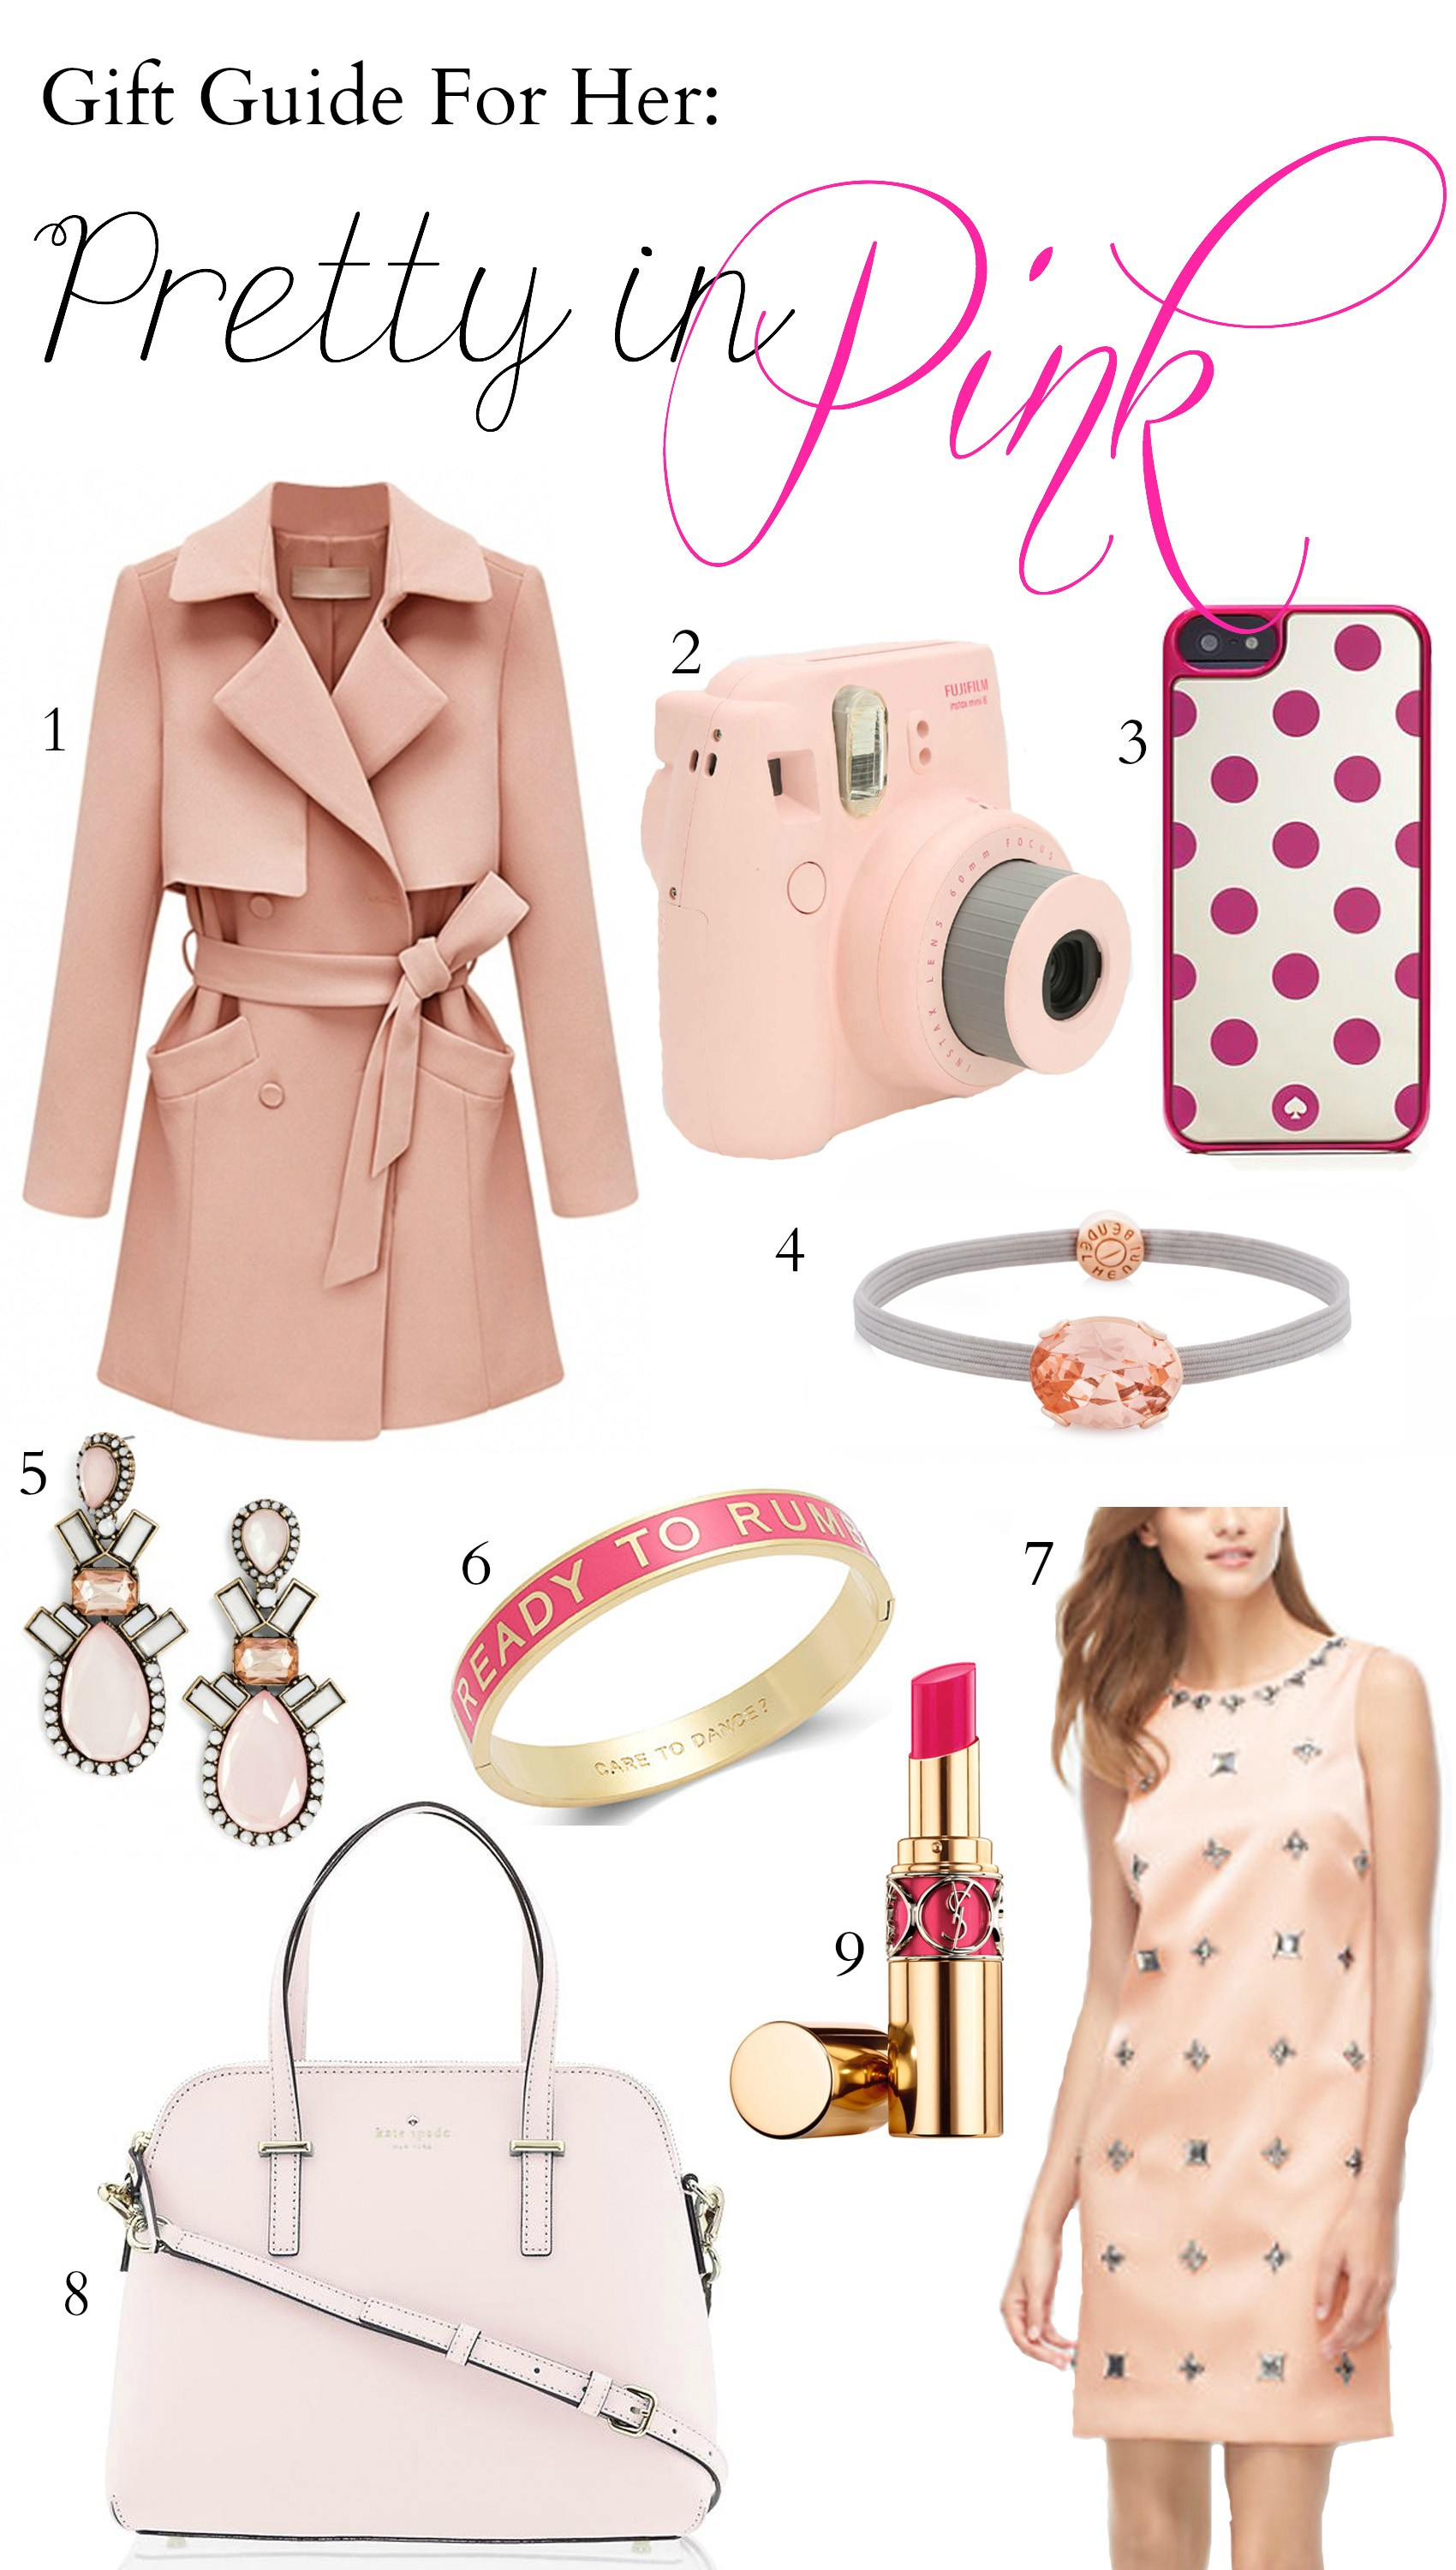 gifts for teenagers | gifts for young girls | last minute gift ideas | kate spade, nordstrom, toyshop